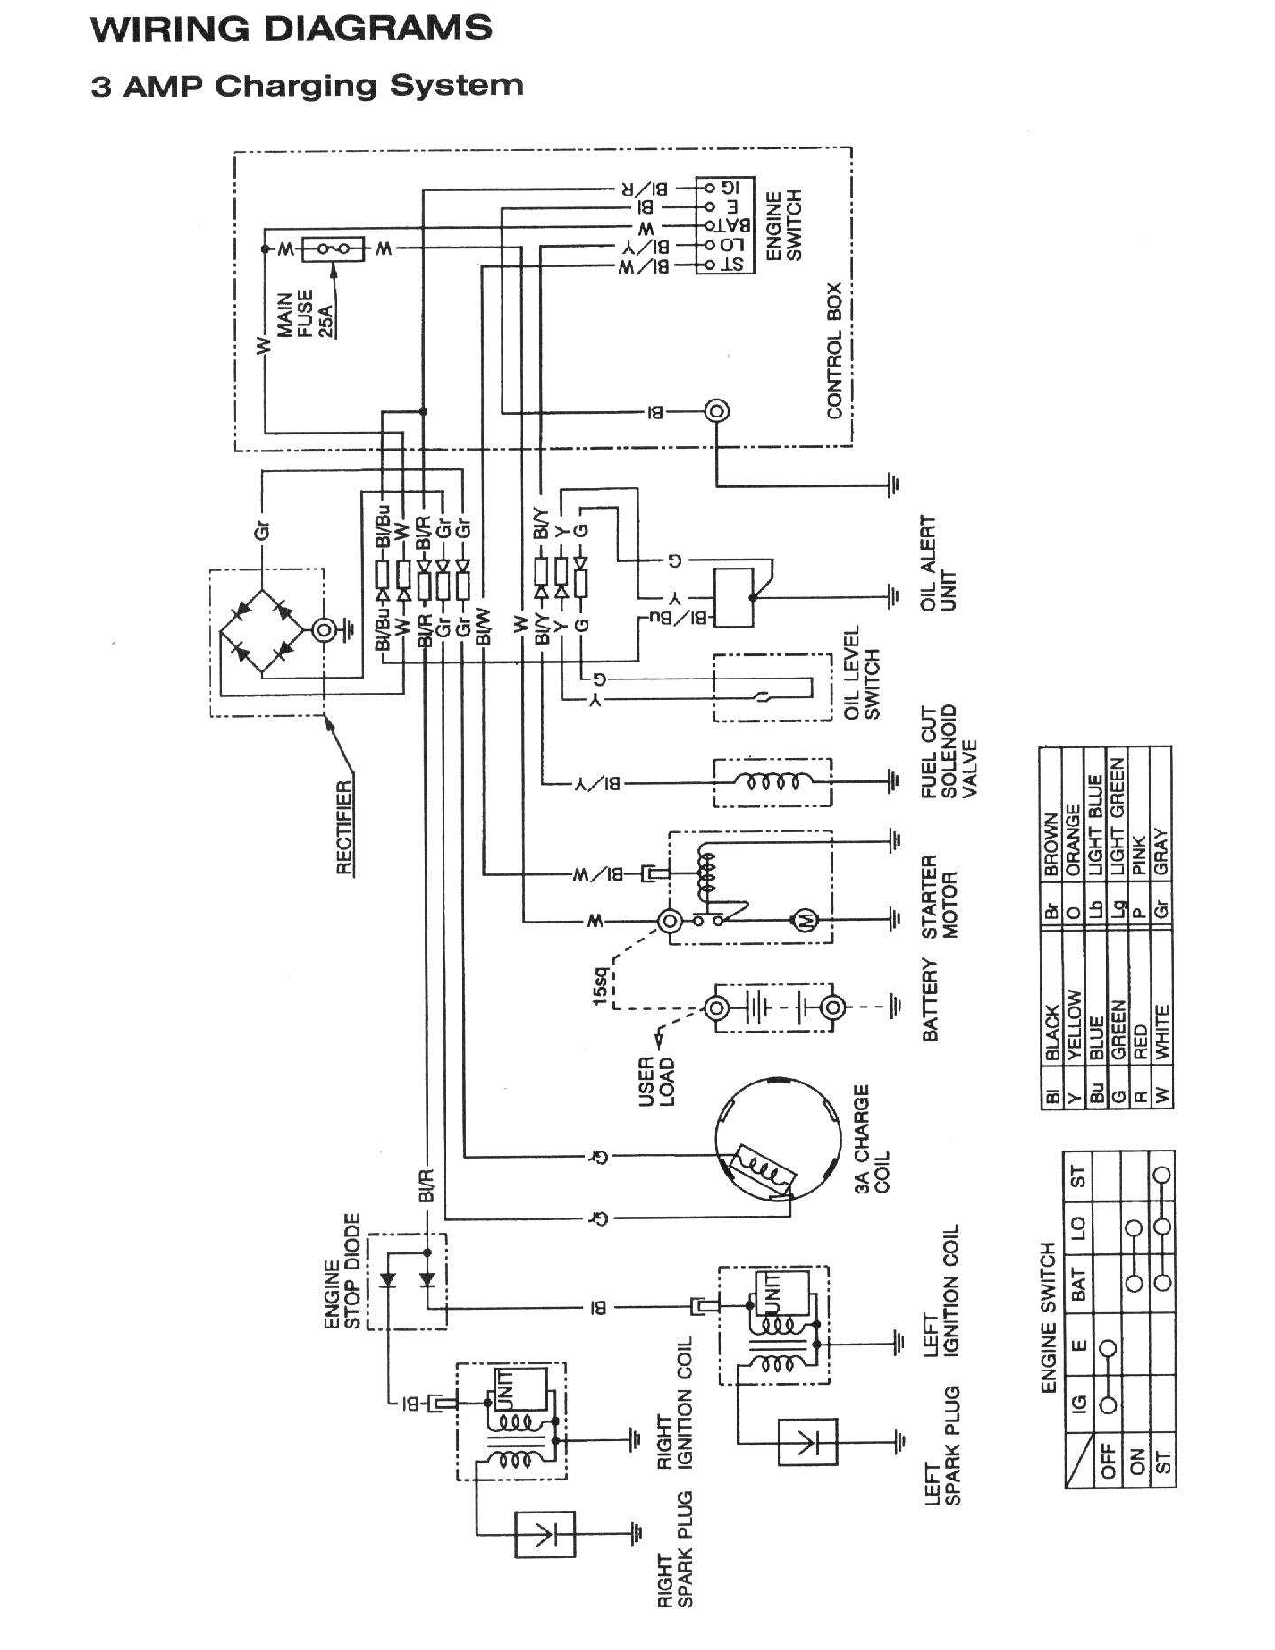 Briggs And Stratton Ignition Switch Wiring Diagram from schematron.org